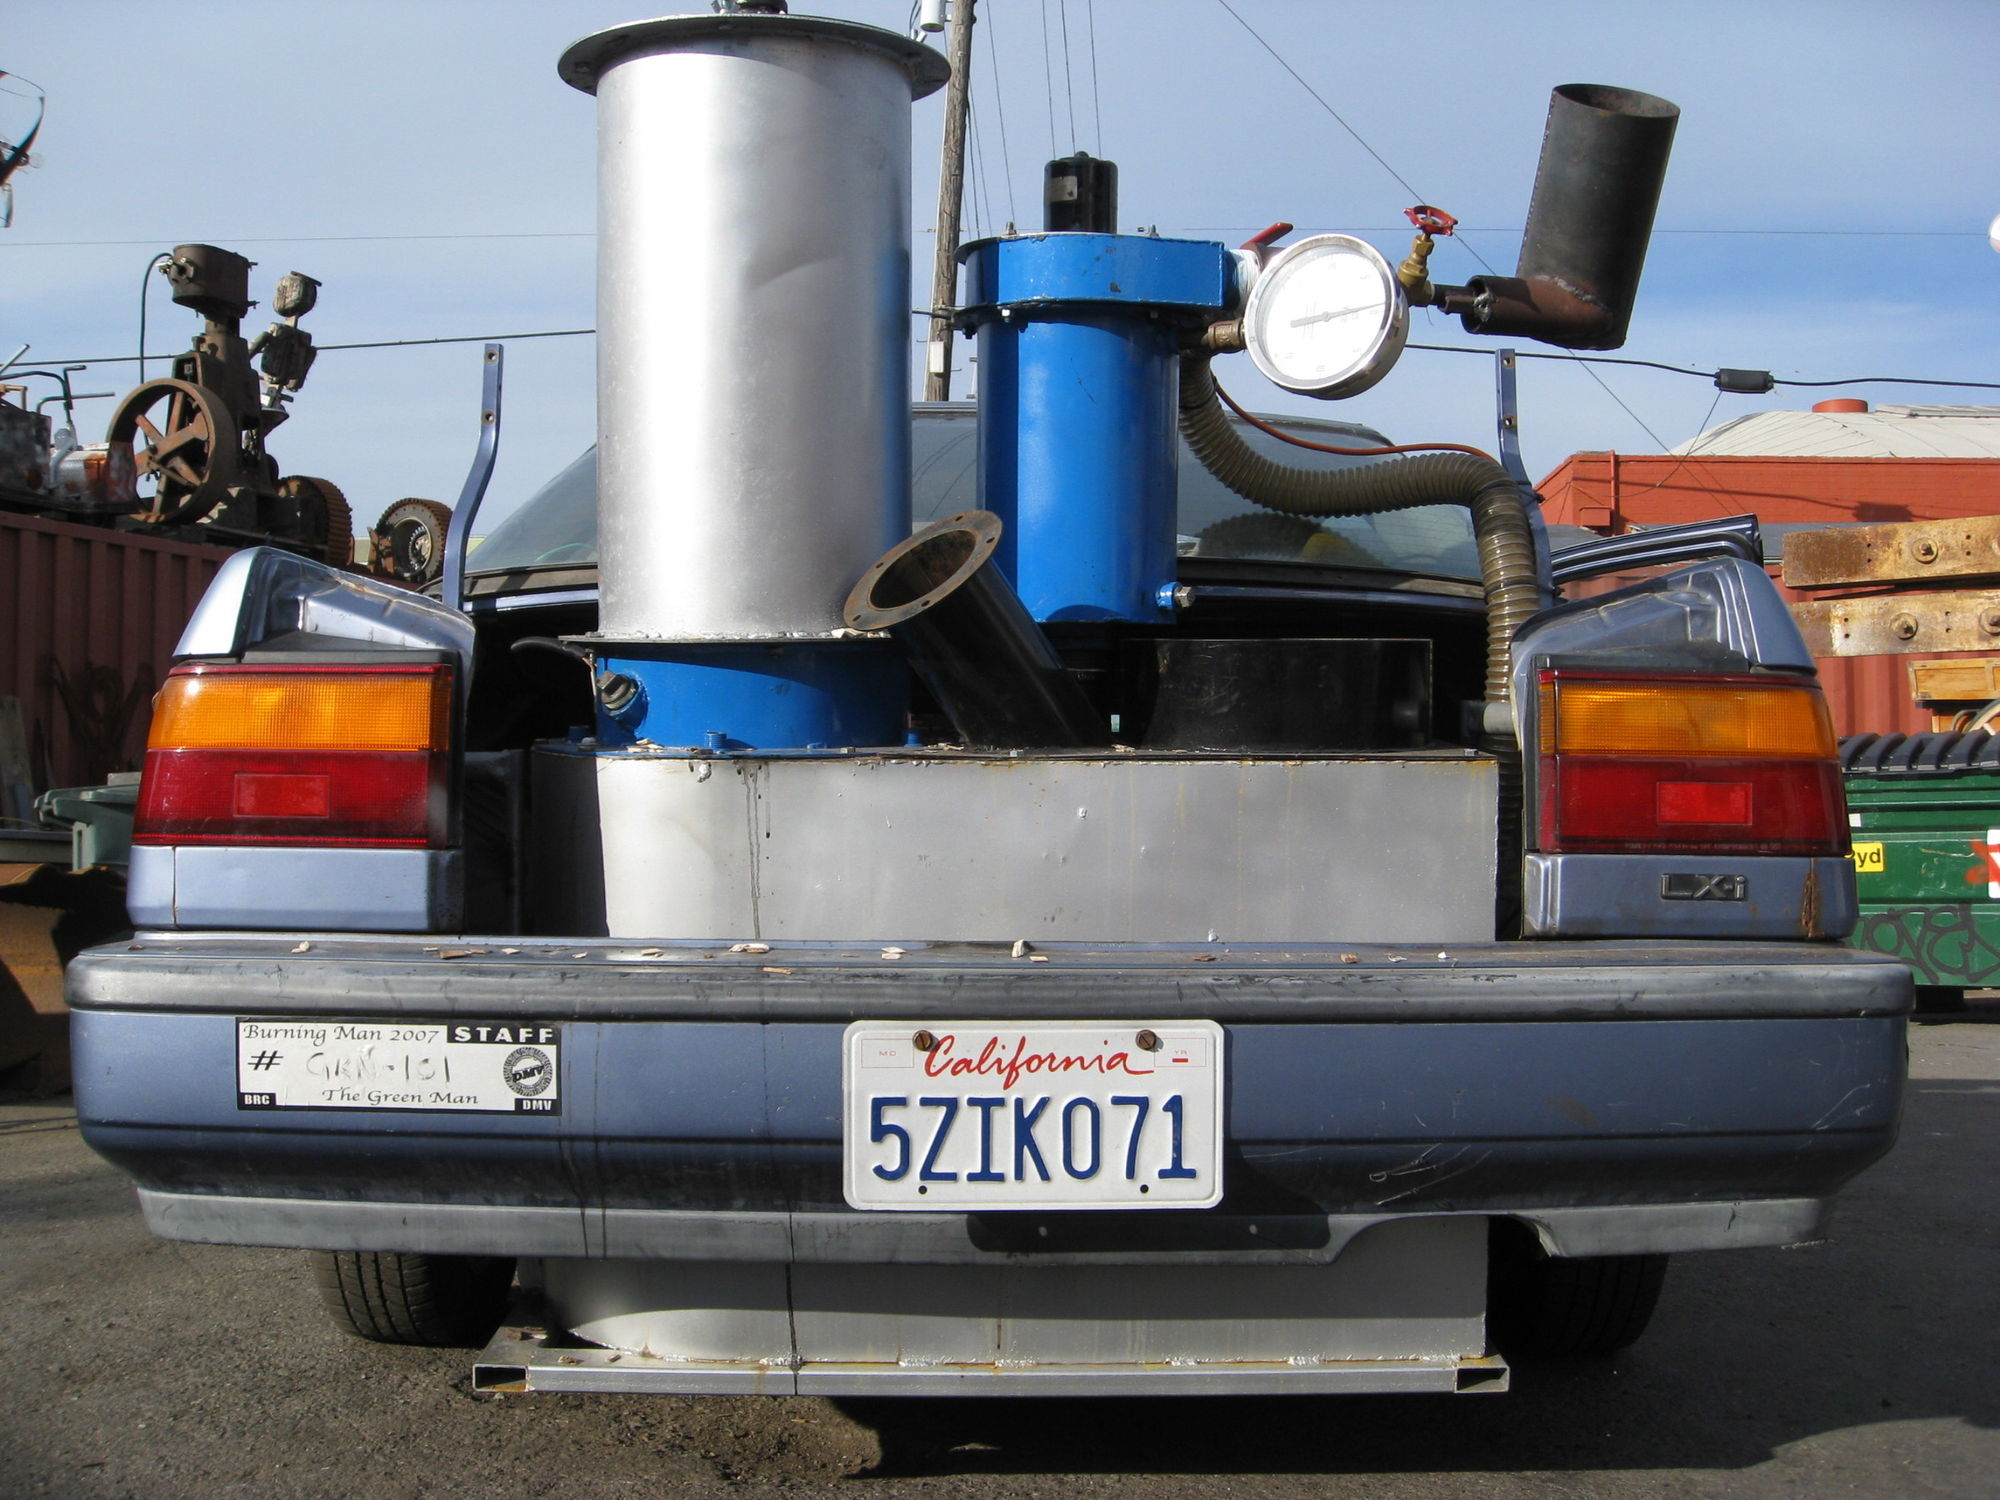 Convert your Honda Accord to run on trash